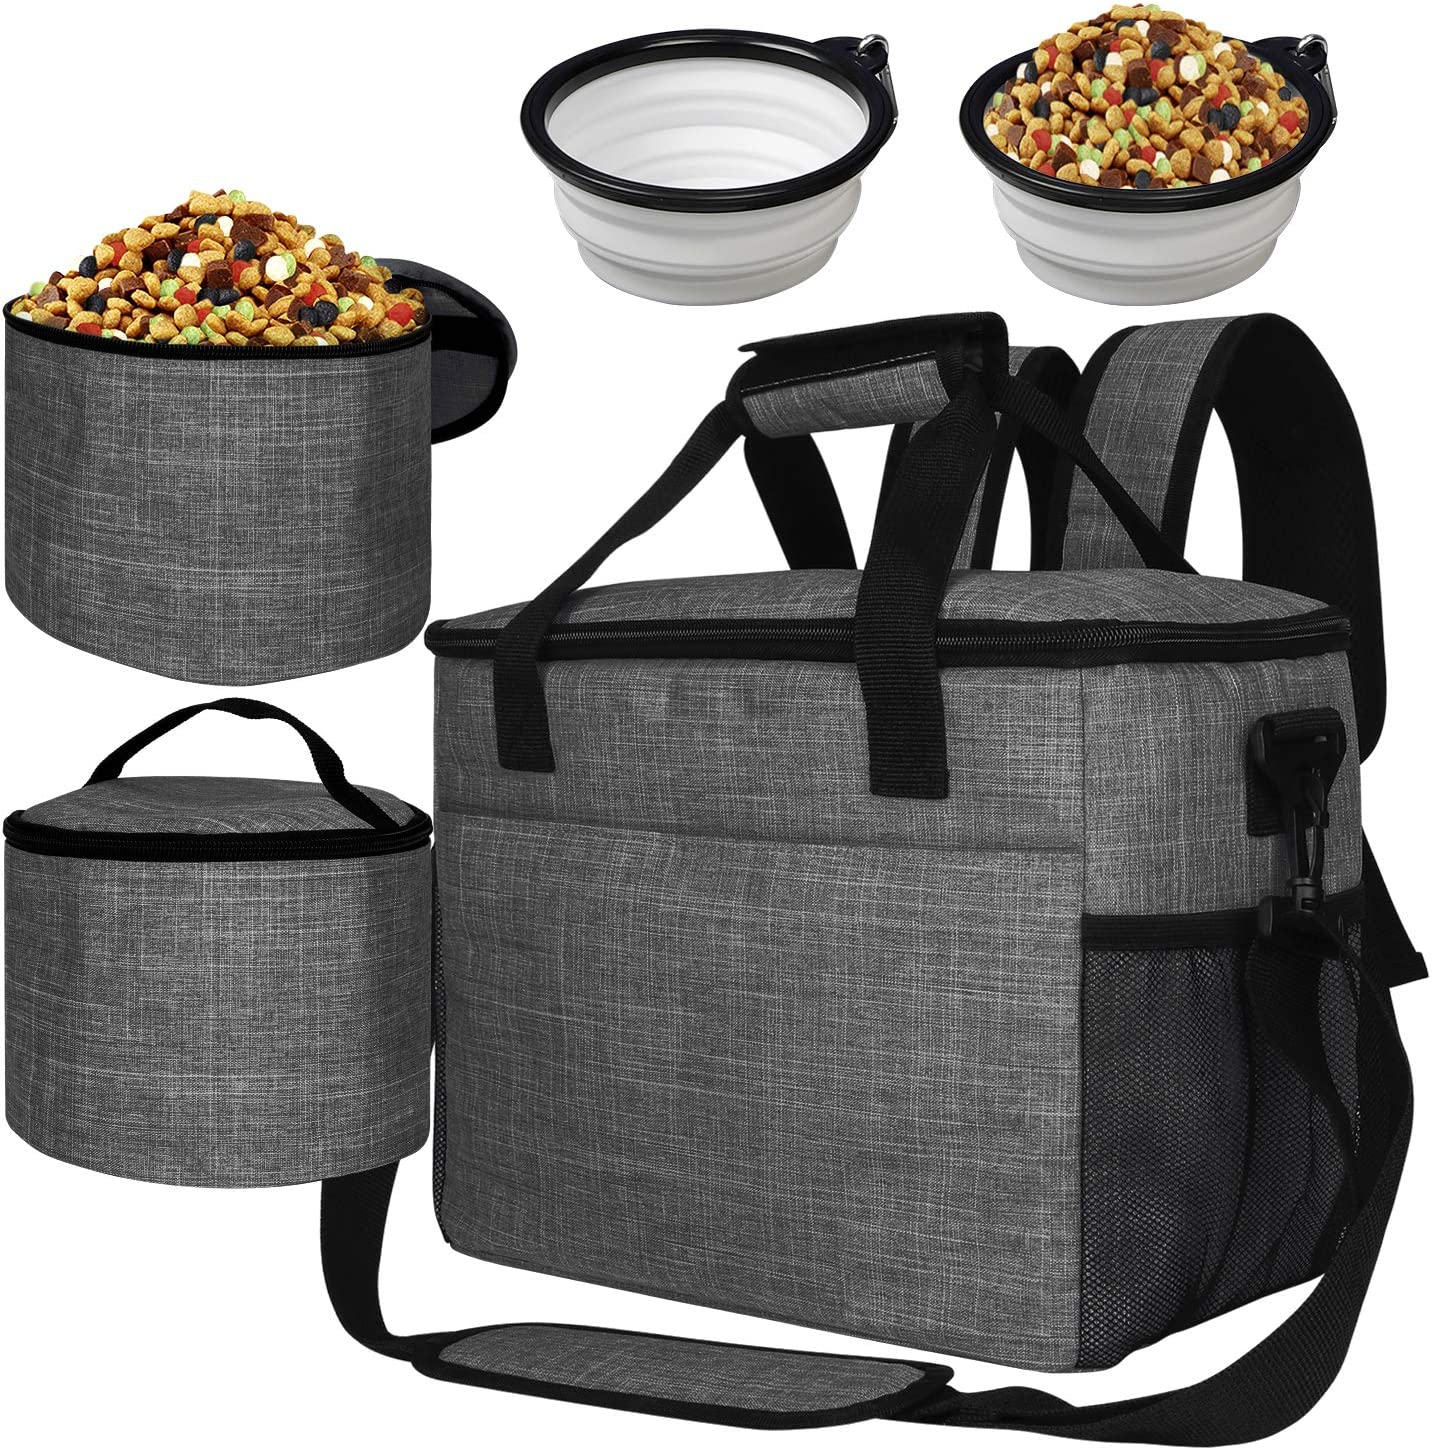 BAGLHER 丨Dog Travel Bag,Pet Supplies Backpack,Pet Accessories Storage Bag 5-Piece Set,with Shoulder Strap,2 Lined Pet Food Containers,4 Foldable Feeding Bowls. Essential Kit for Pet Travel.